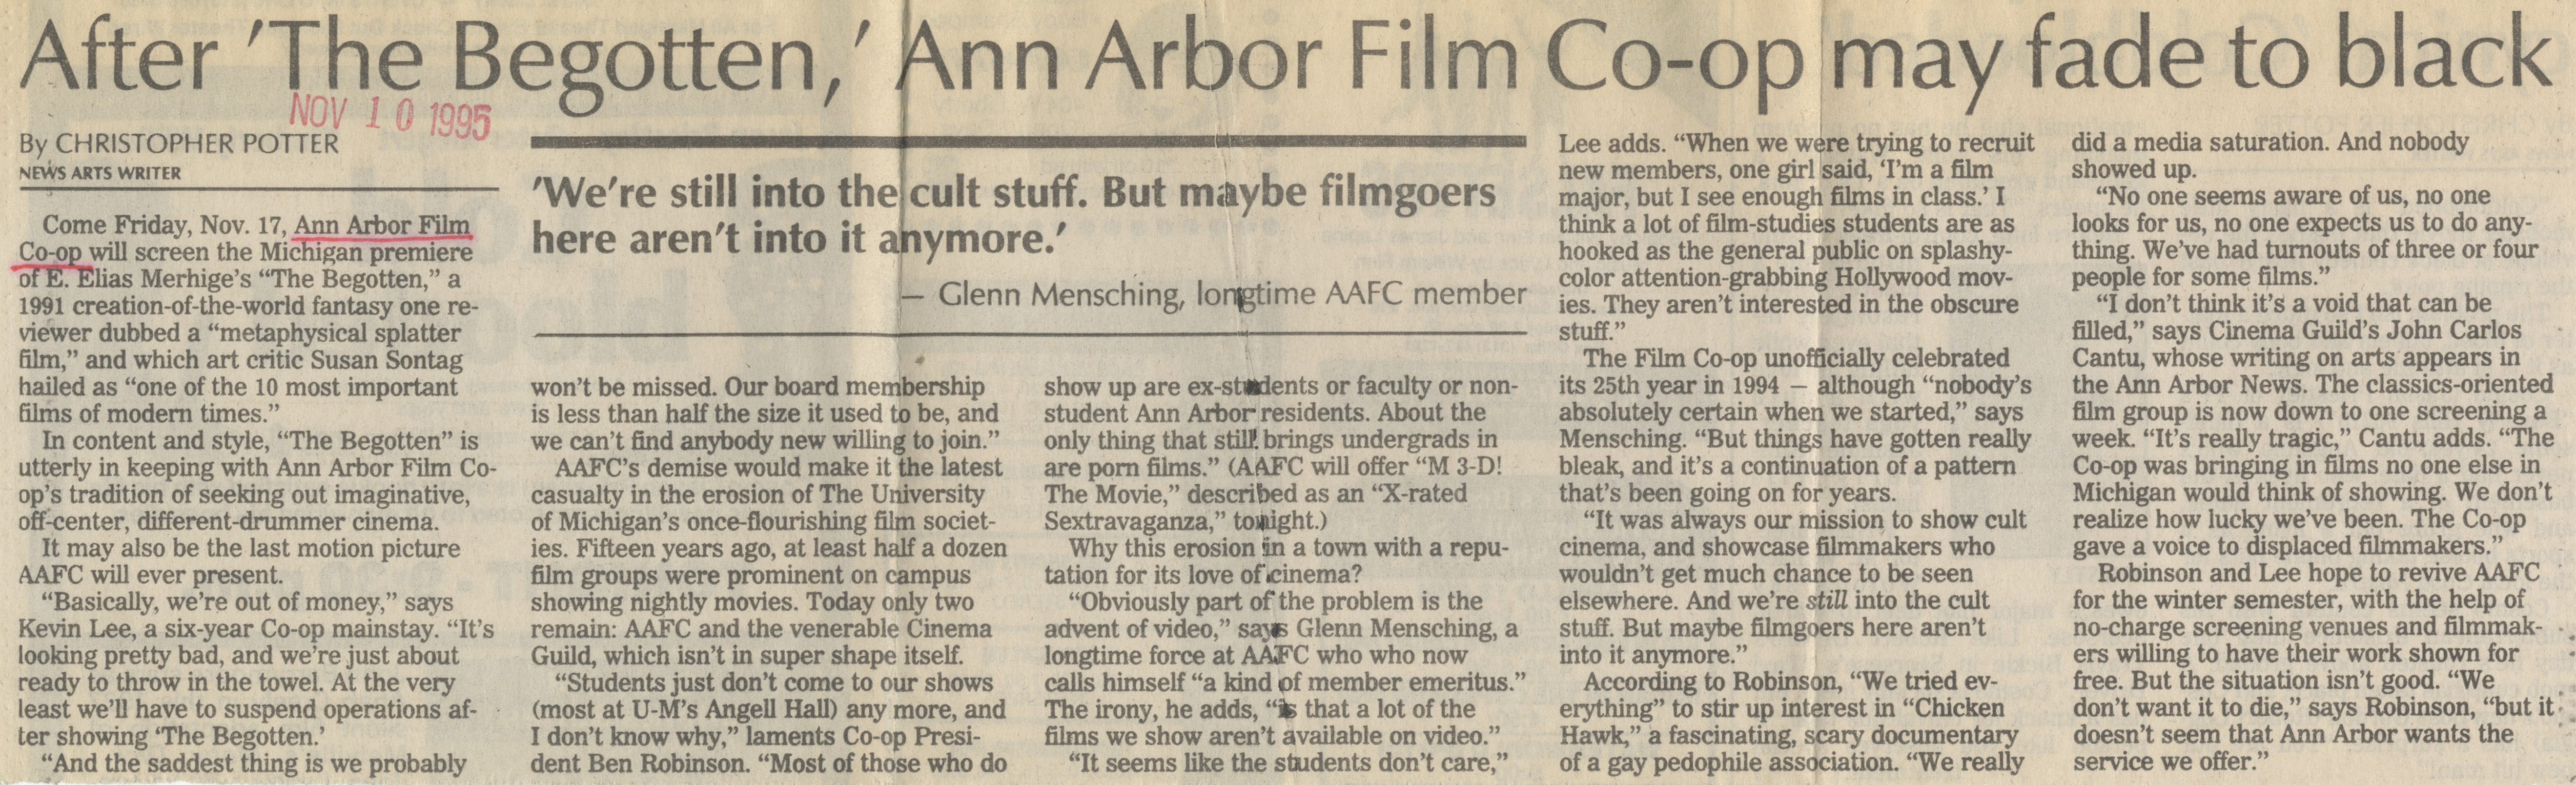 After 'The Begotten,' Ann Arbor Film Co-op may fade to black image